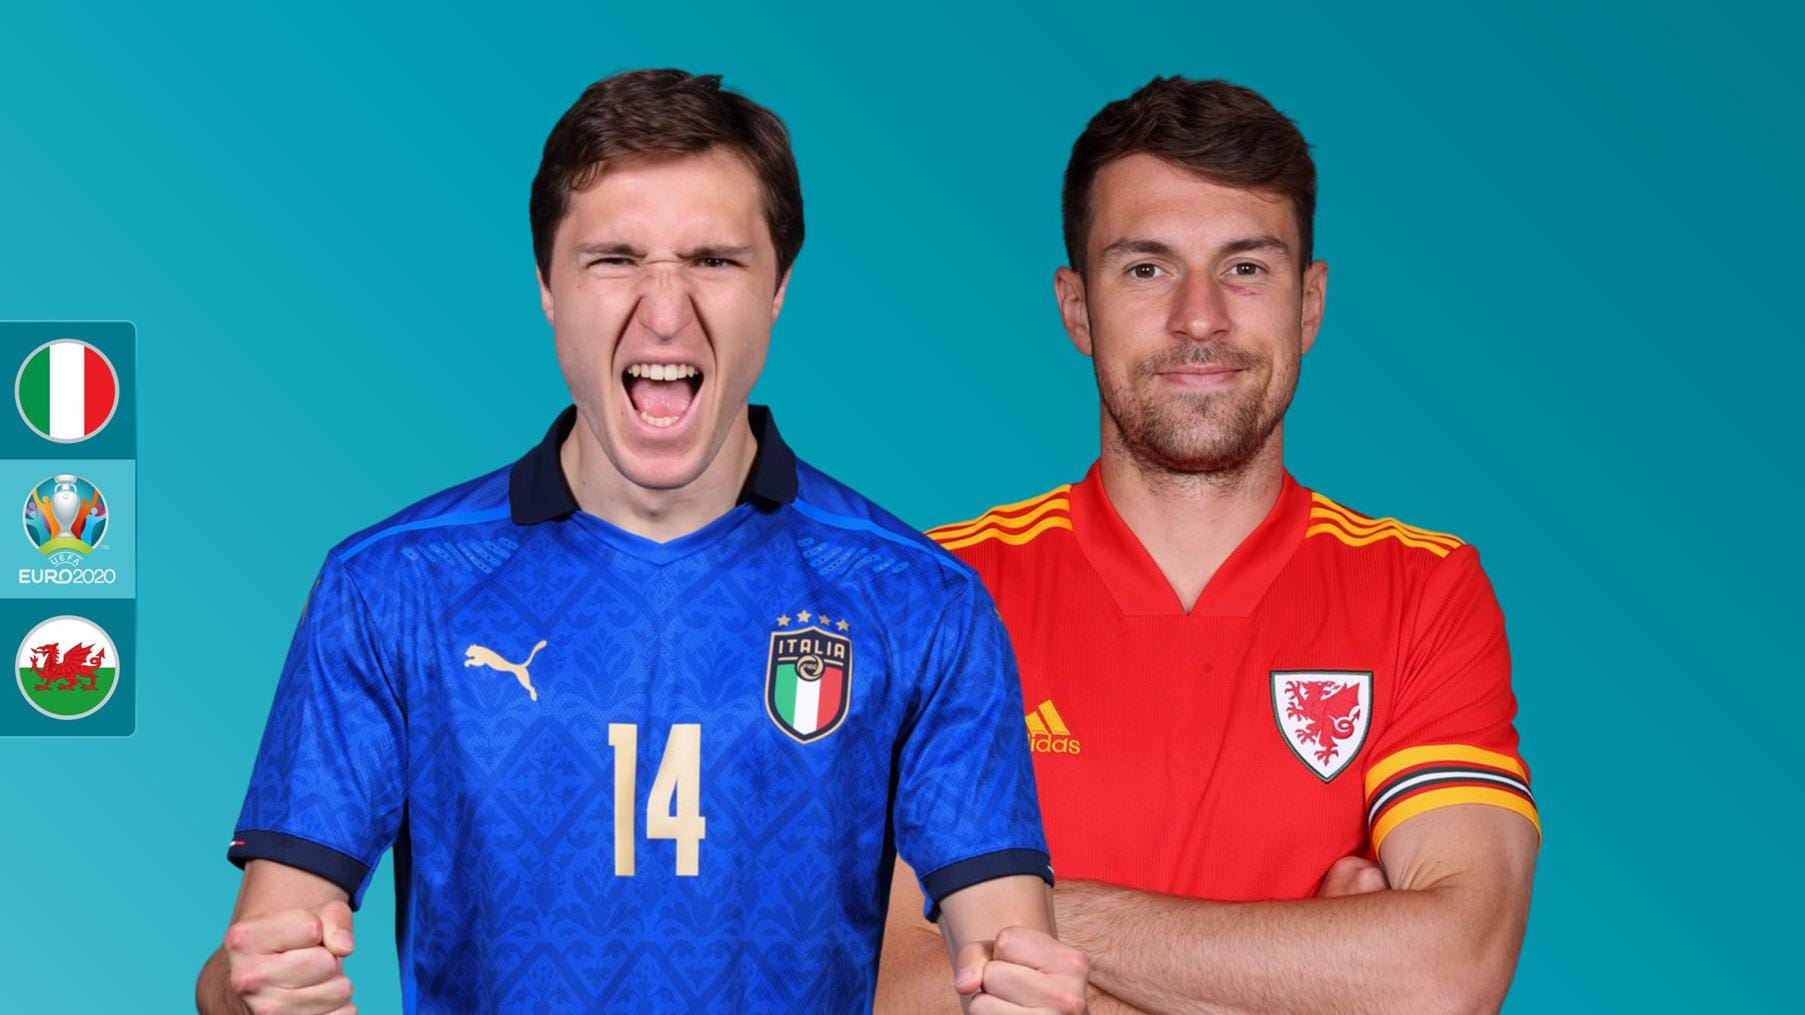 Italy vs Wales preview